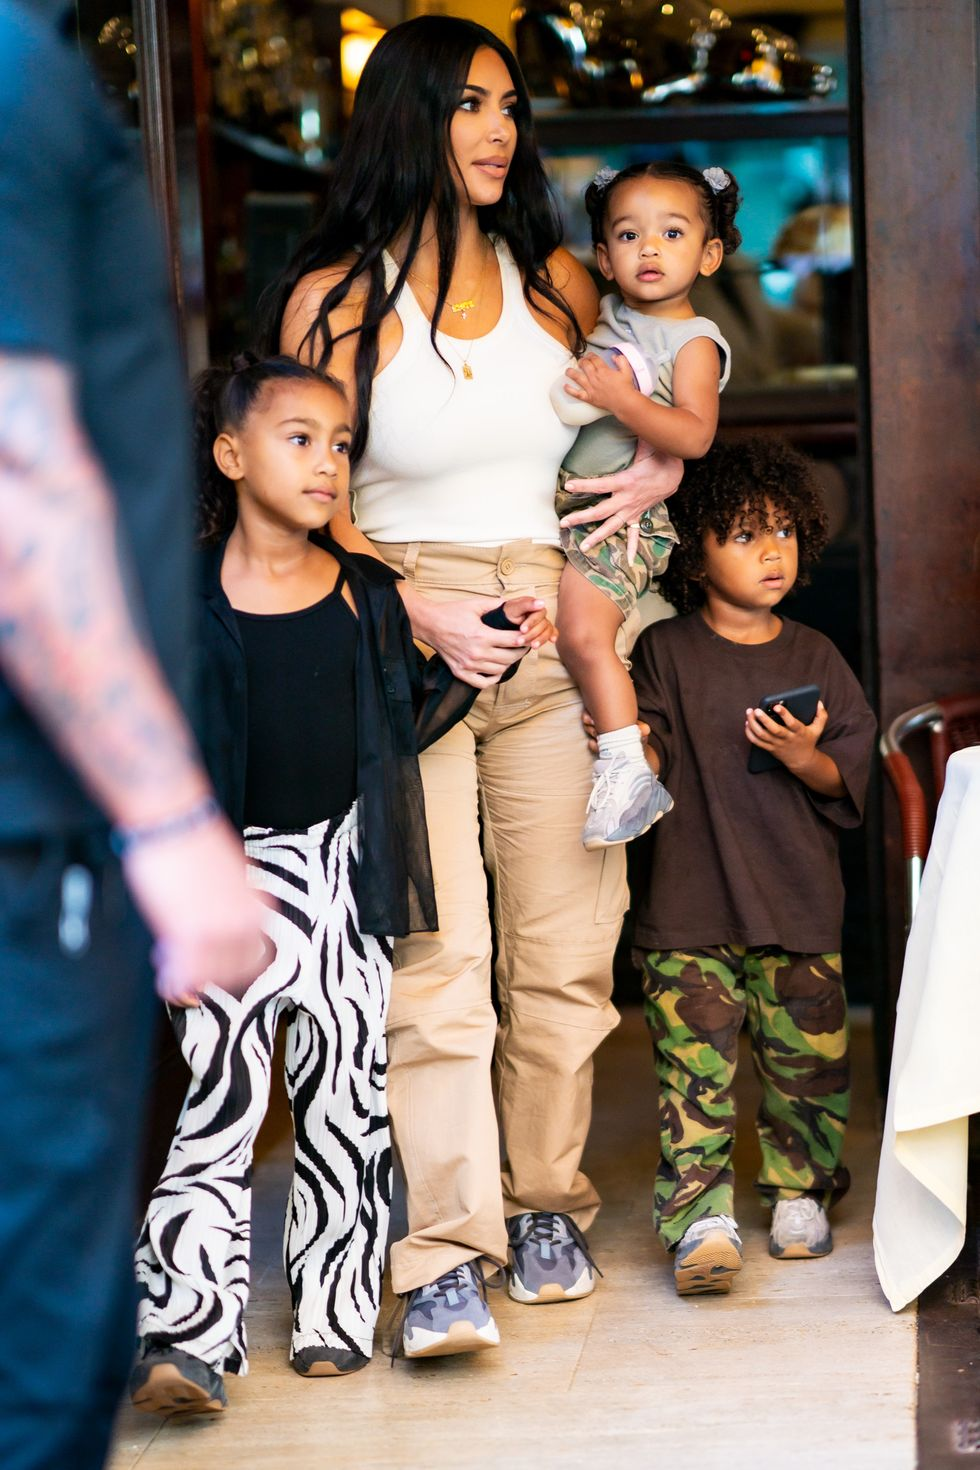 Let Chicago West Cheer You Up in These Dark Times With This Sweet Song